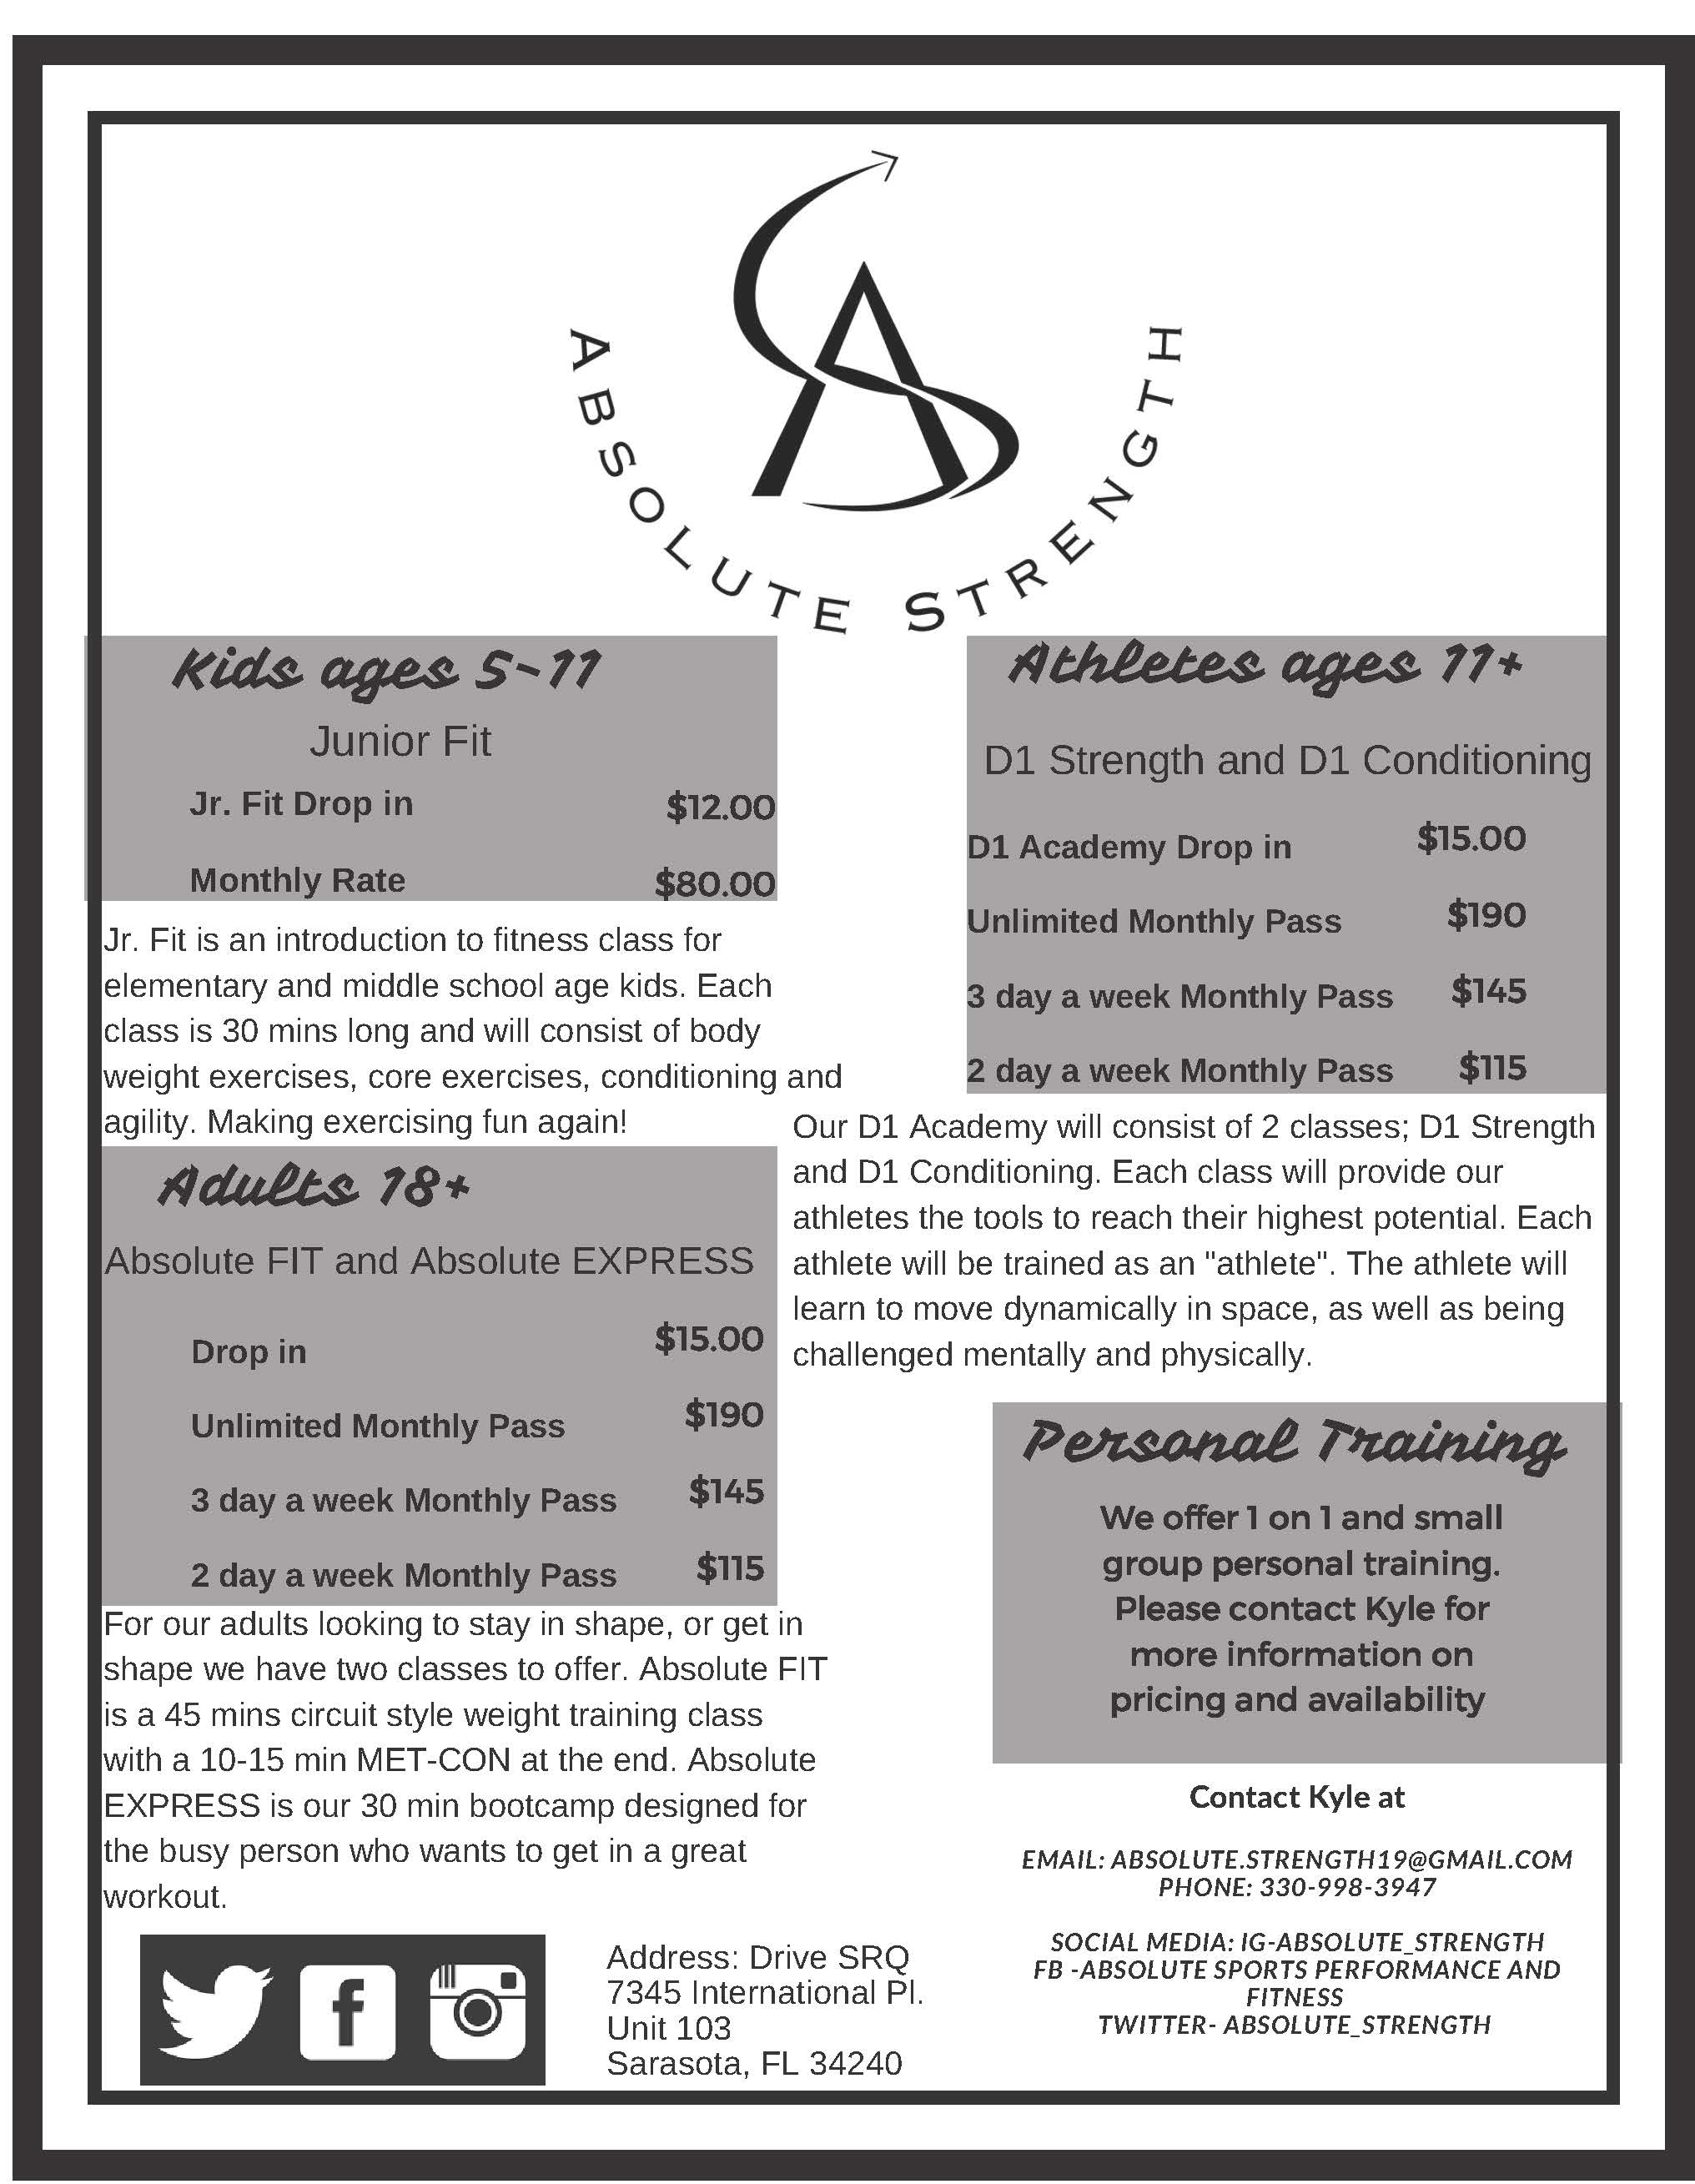 Copy of Absolute Price sheet picture_Page_1